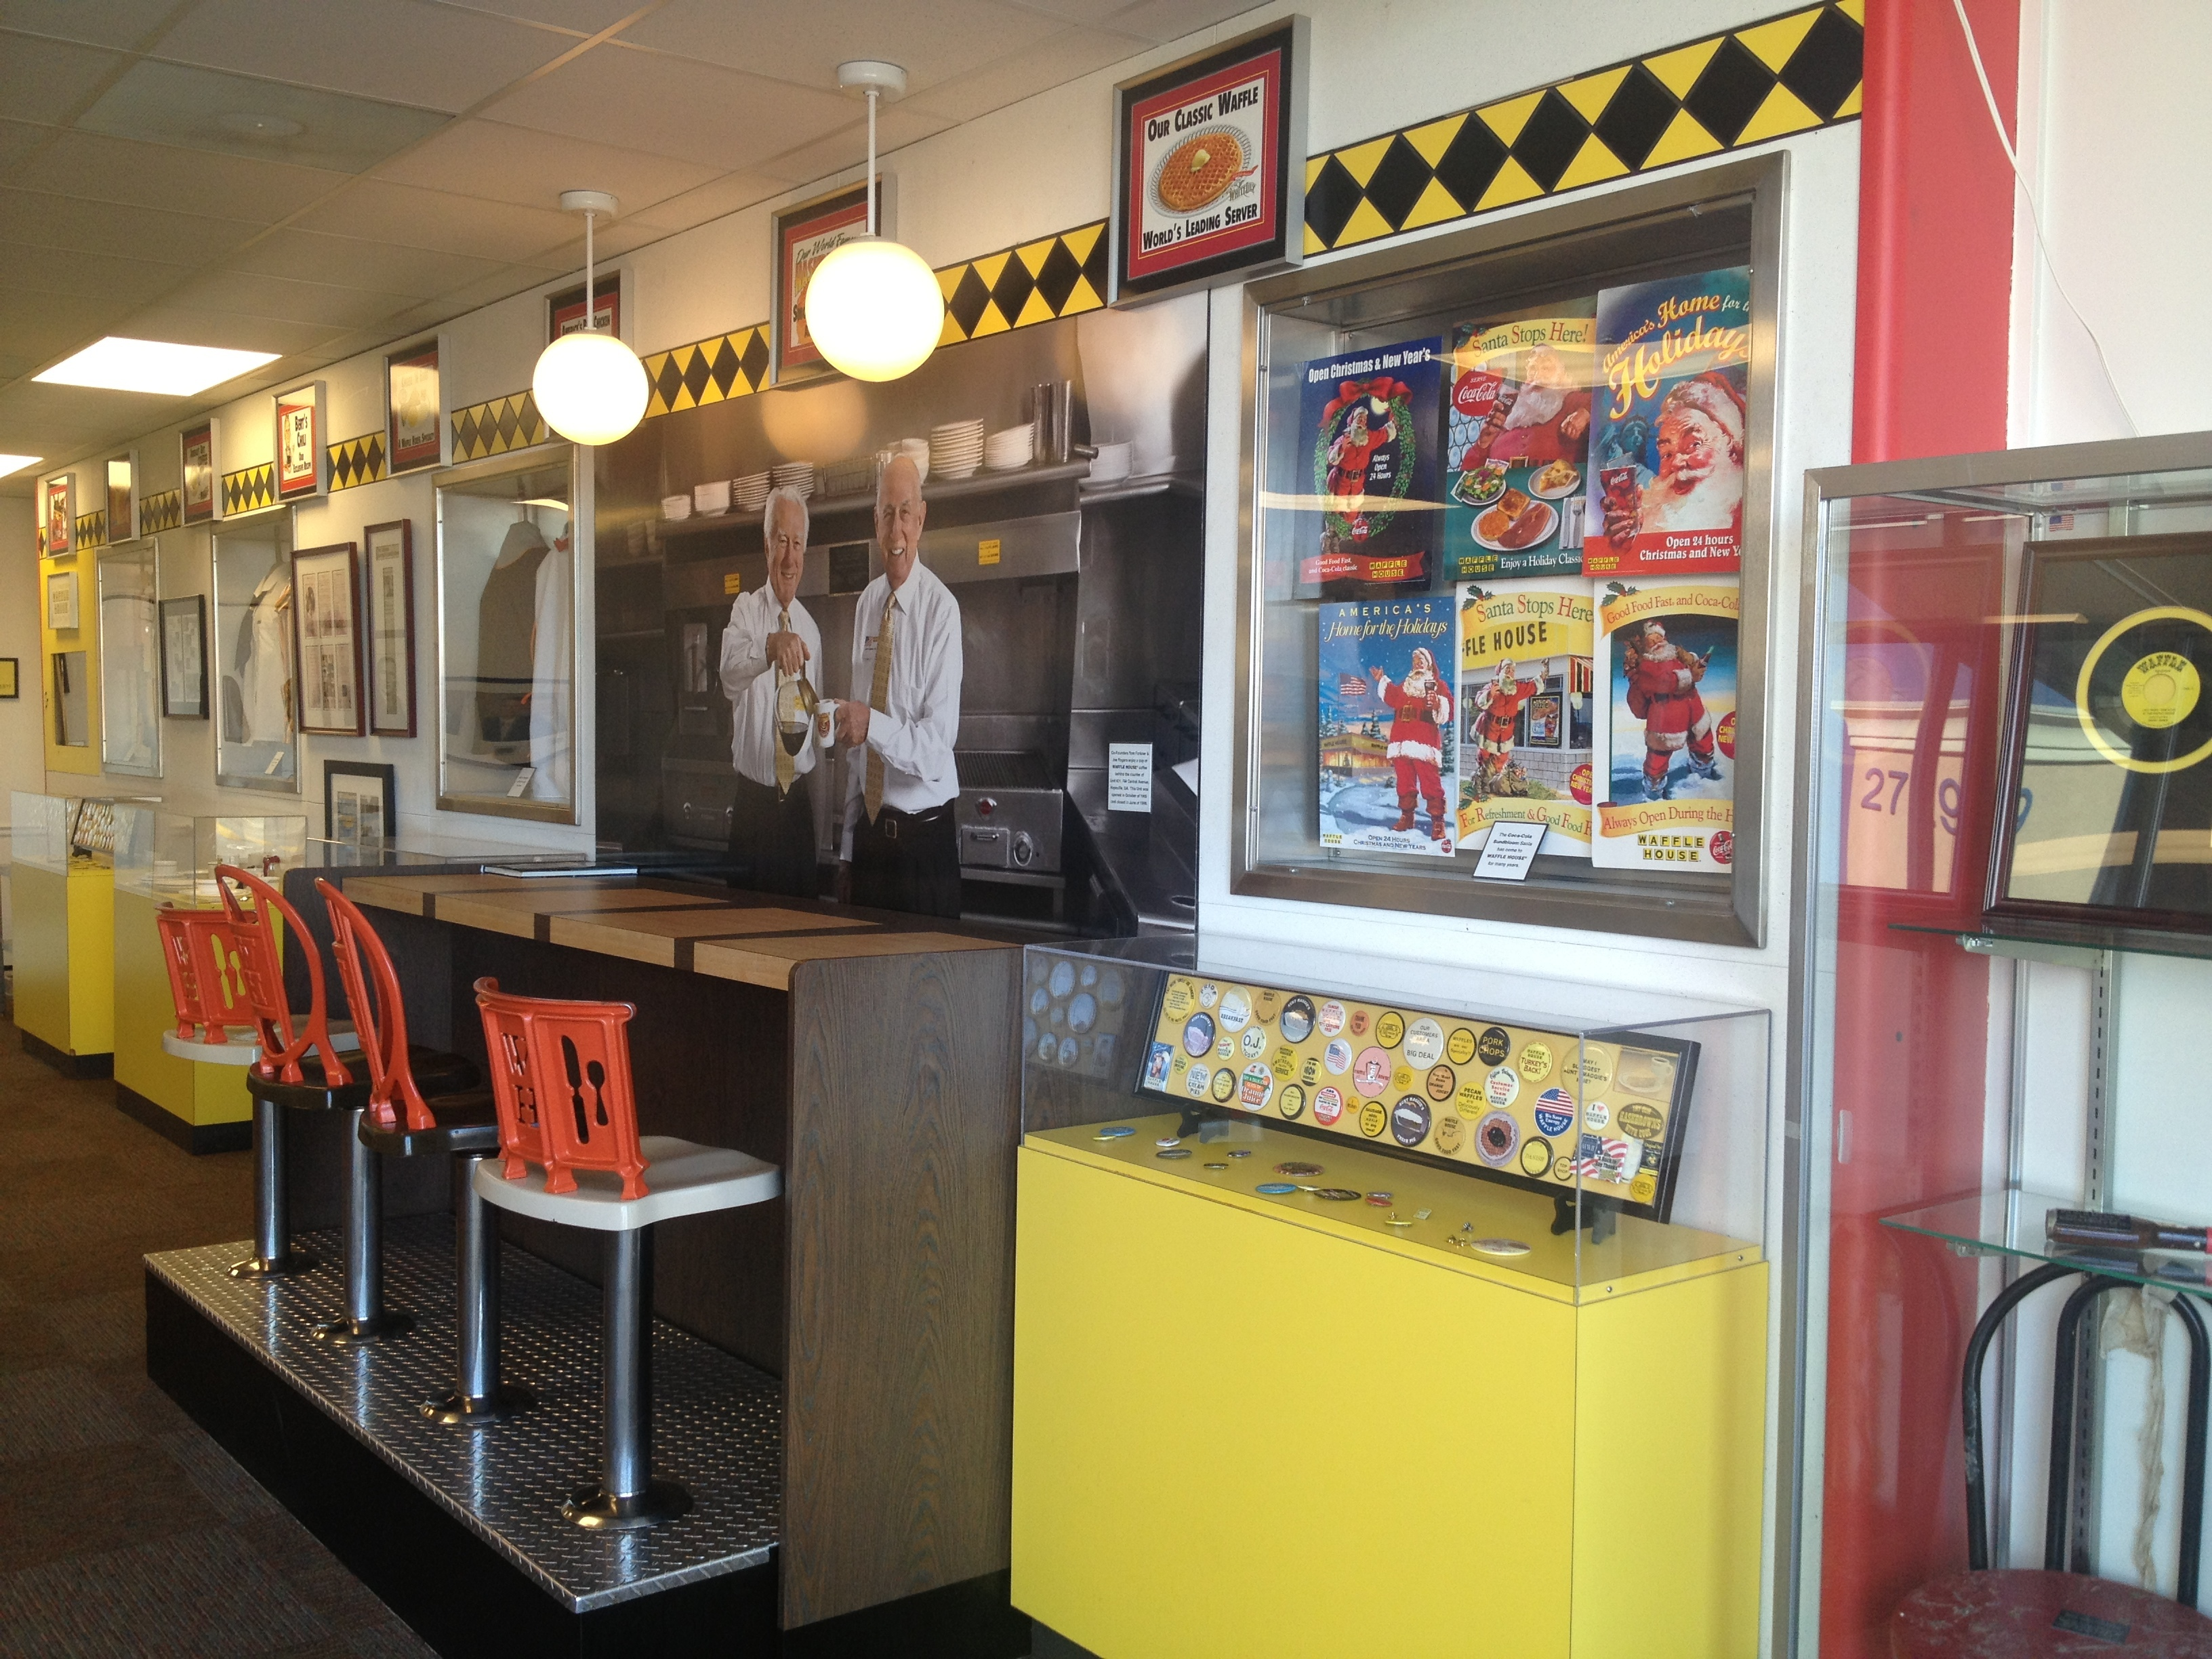 A 1955-era Waffle House restaurant with bar seating and memorabilia displays.